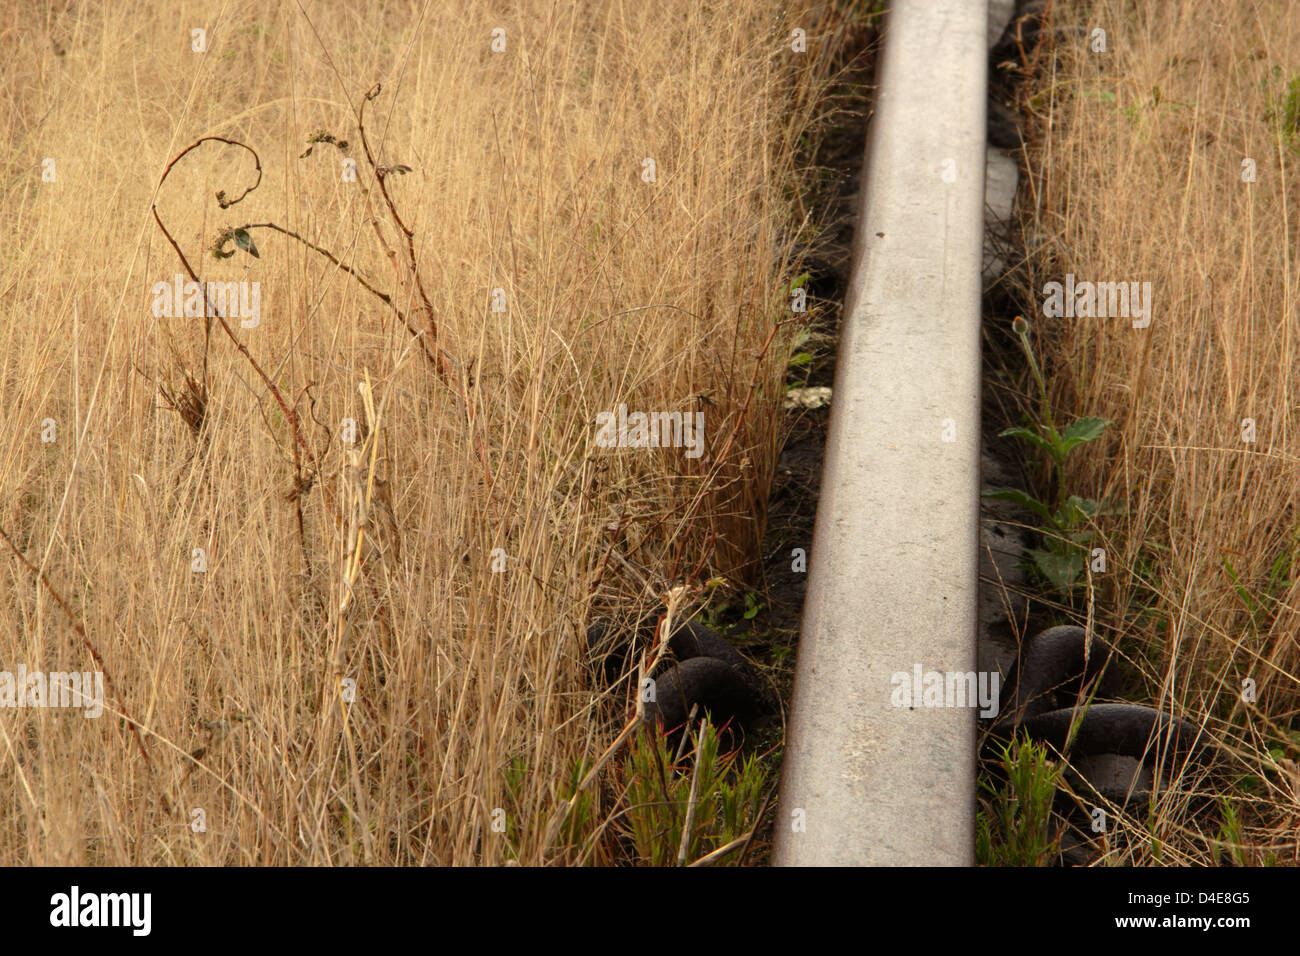 Macro closeup of a train rail track with long grass engulfing it. Good detail in the grass and the various rail - Stock Image